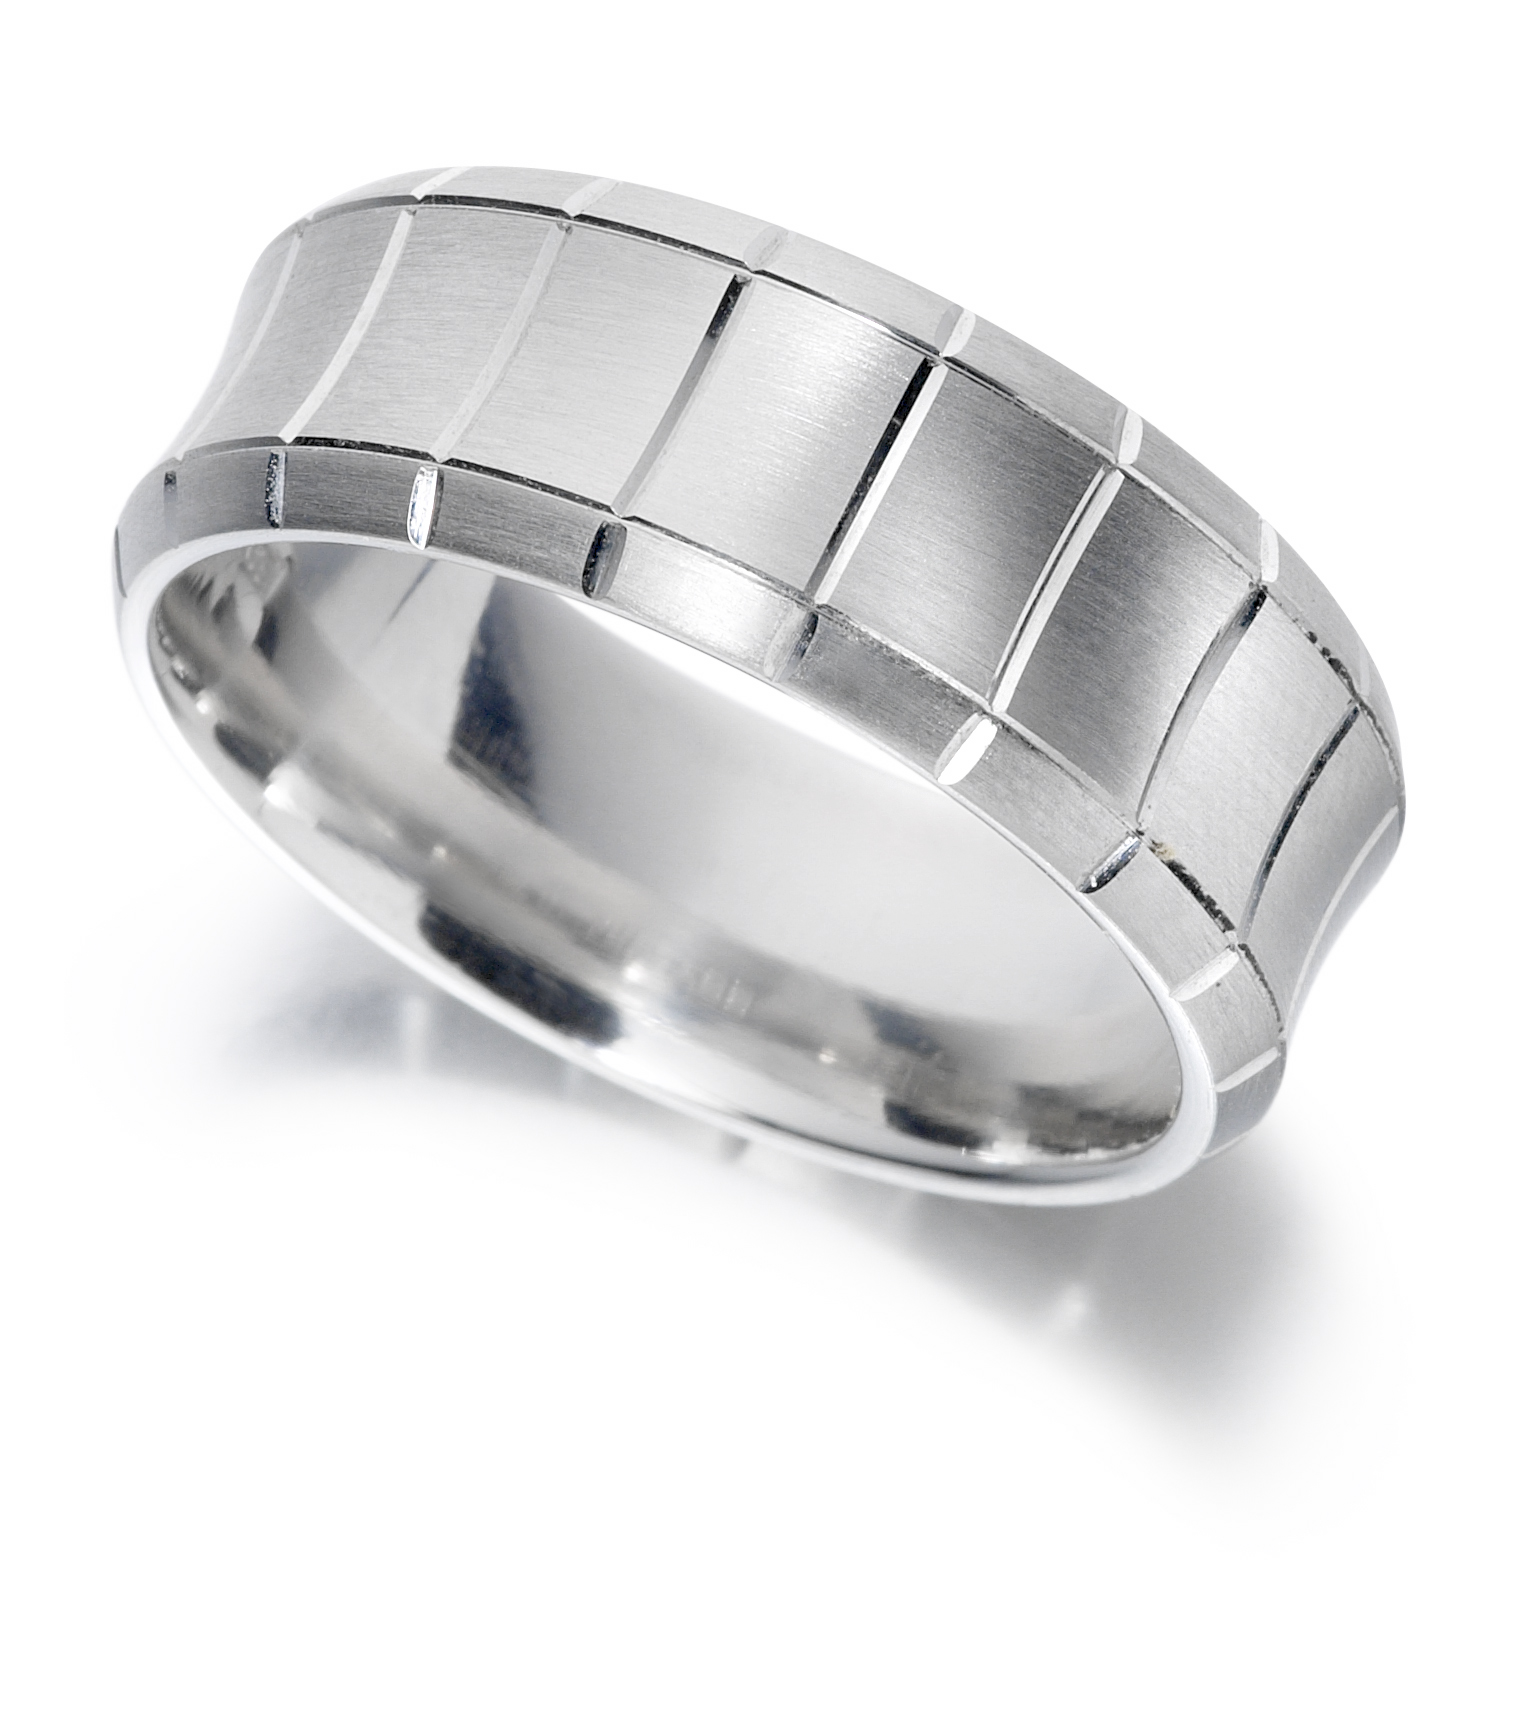 6mm 18ct White Concave Wedding Ring Size U